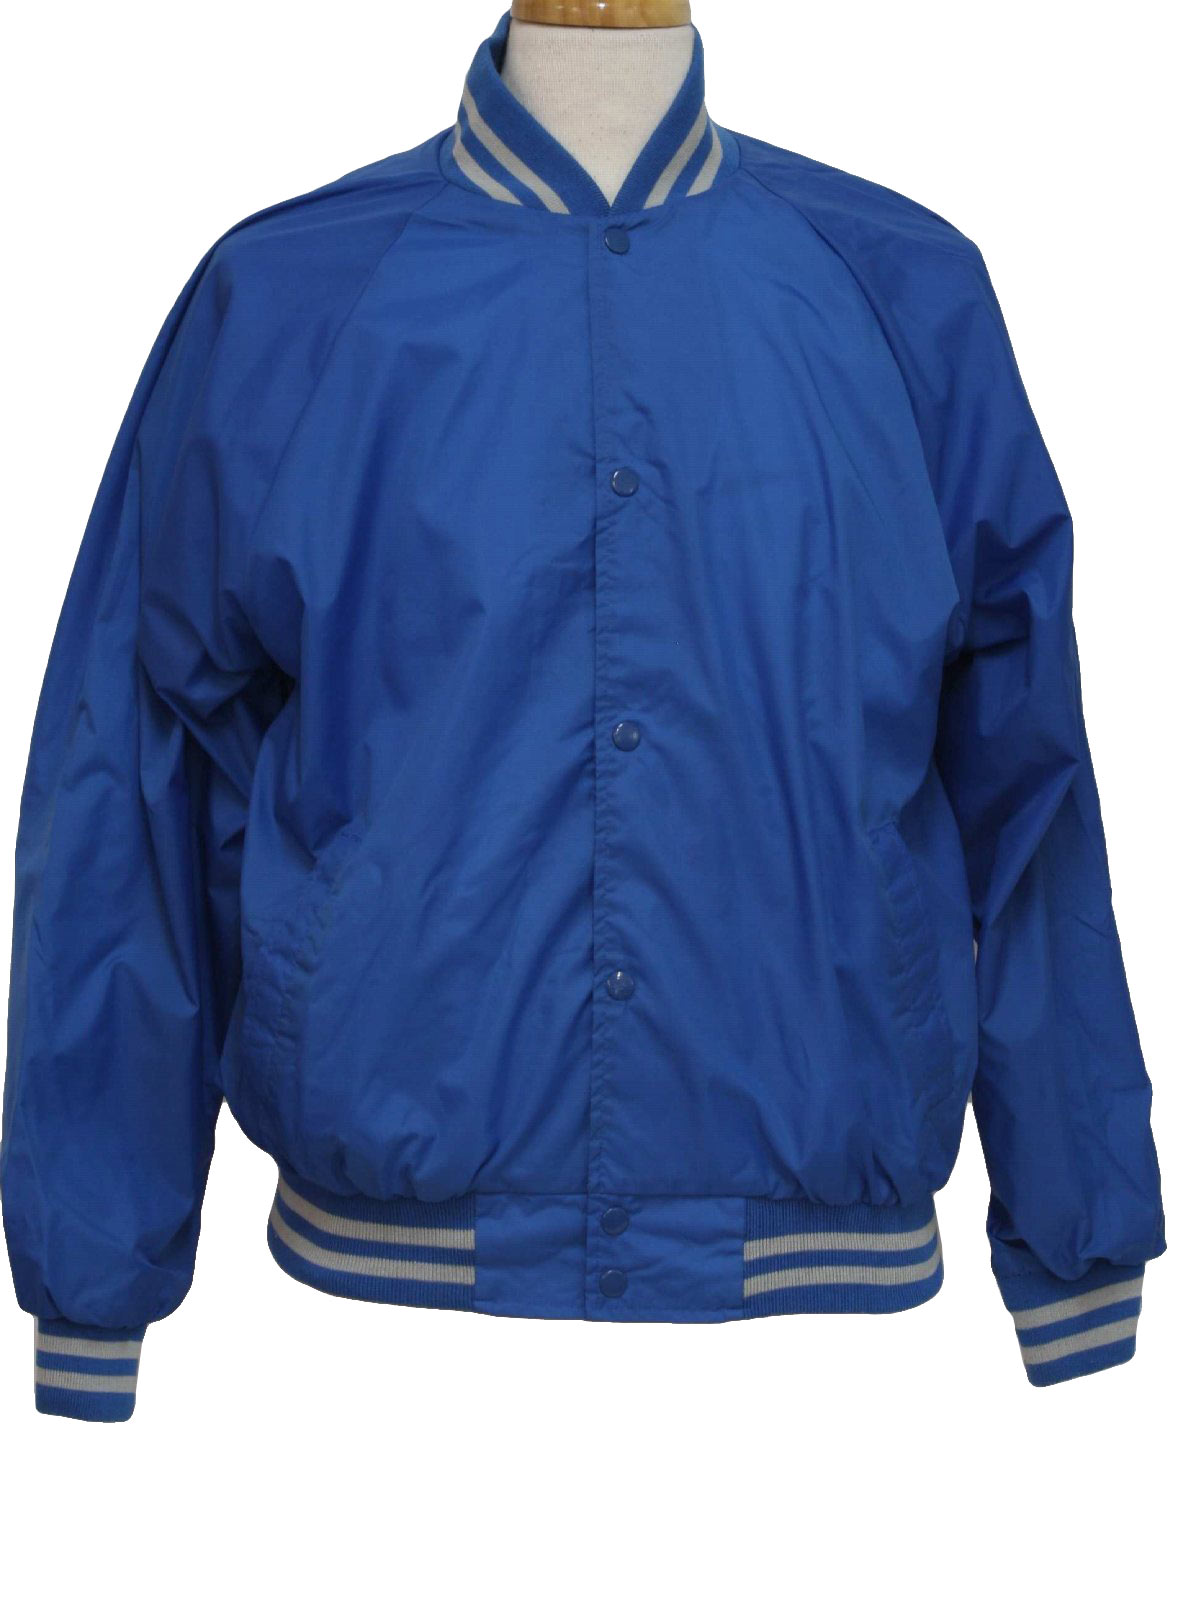 Nylon Baseball Jacket Tgw4t2